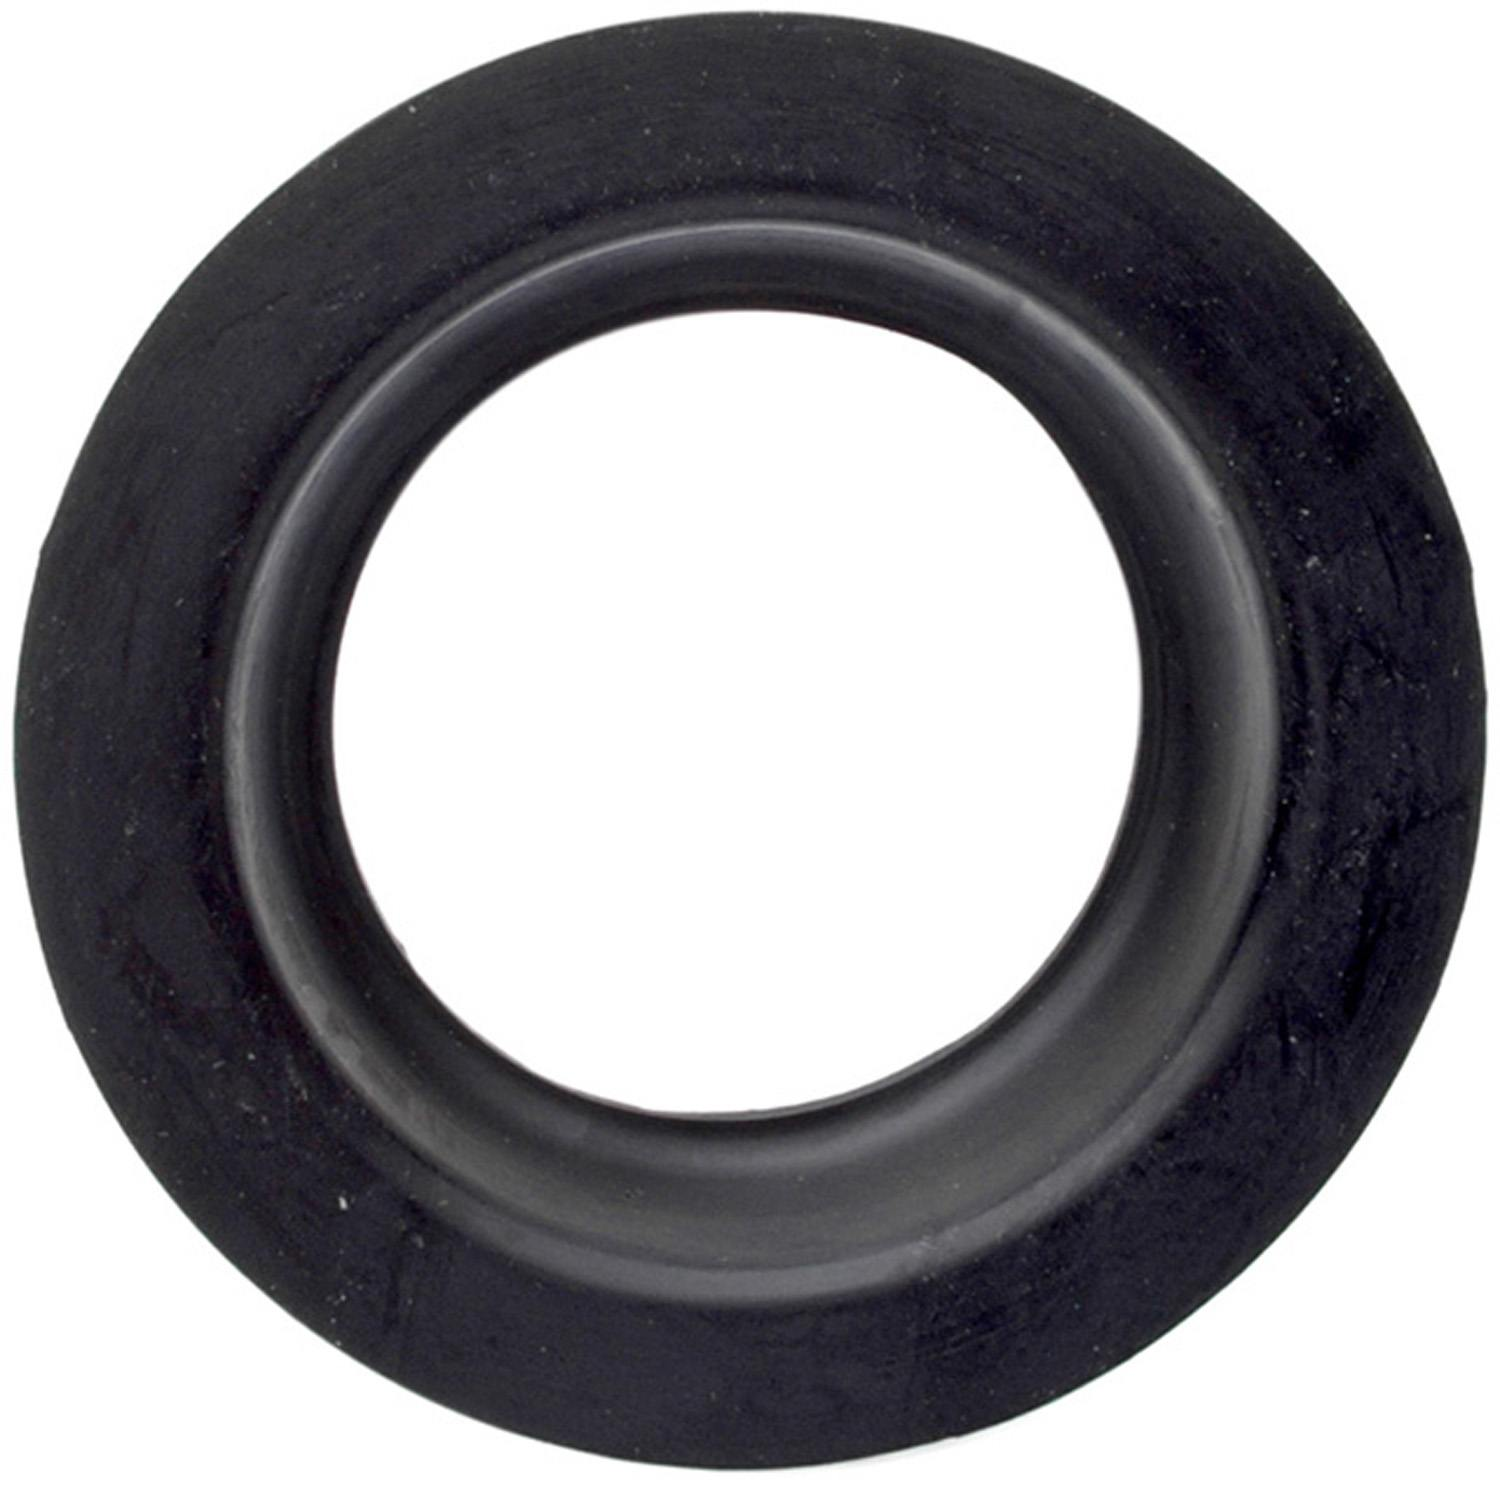 ACDELCO PROFESSIONAL - Coil Spring Insulator - DCC 45G18709